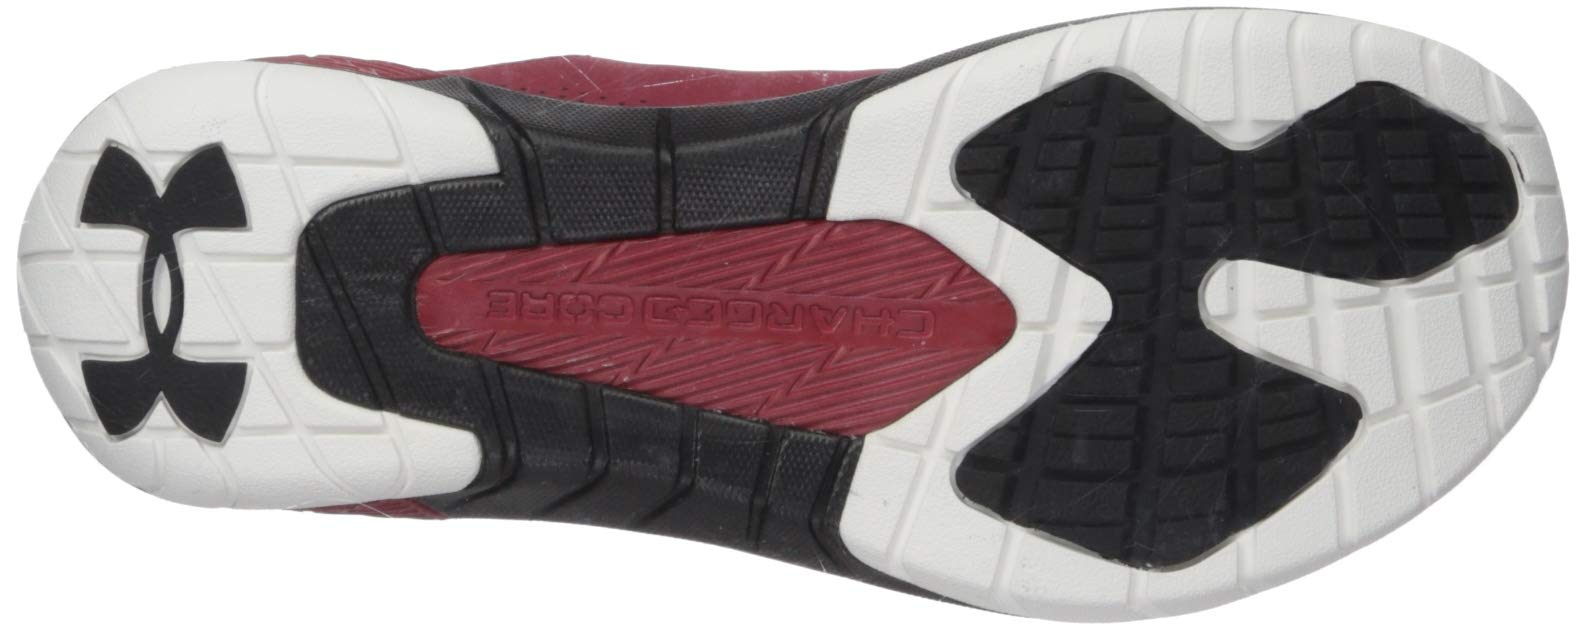 Under Armour Men's Commit TR EX Sneaker, Aruba Red (600)/Black, 7 M US by Under Armour (Image #3)